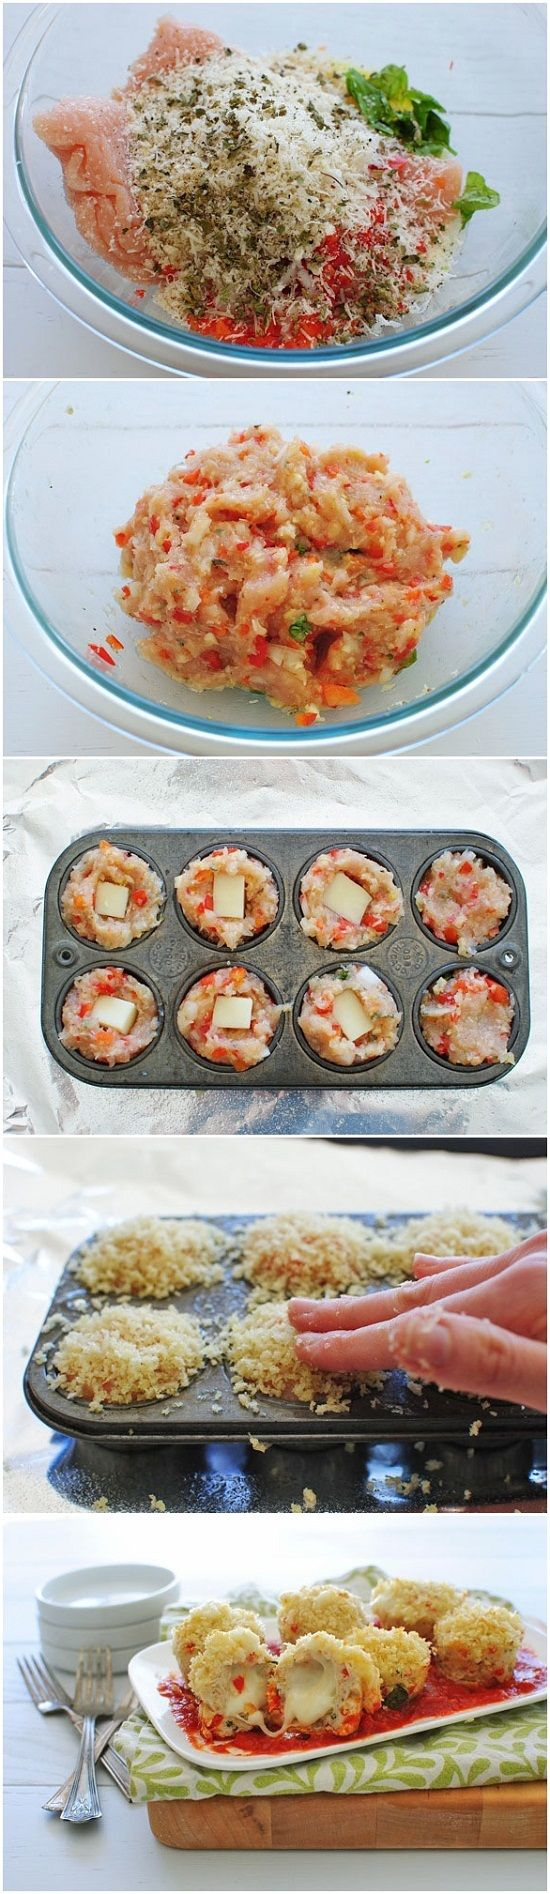 Mini Chicken Parmesan Meatloaf Cupcakes-- Substitute panko & use low carb sauce to lower carbs